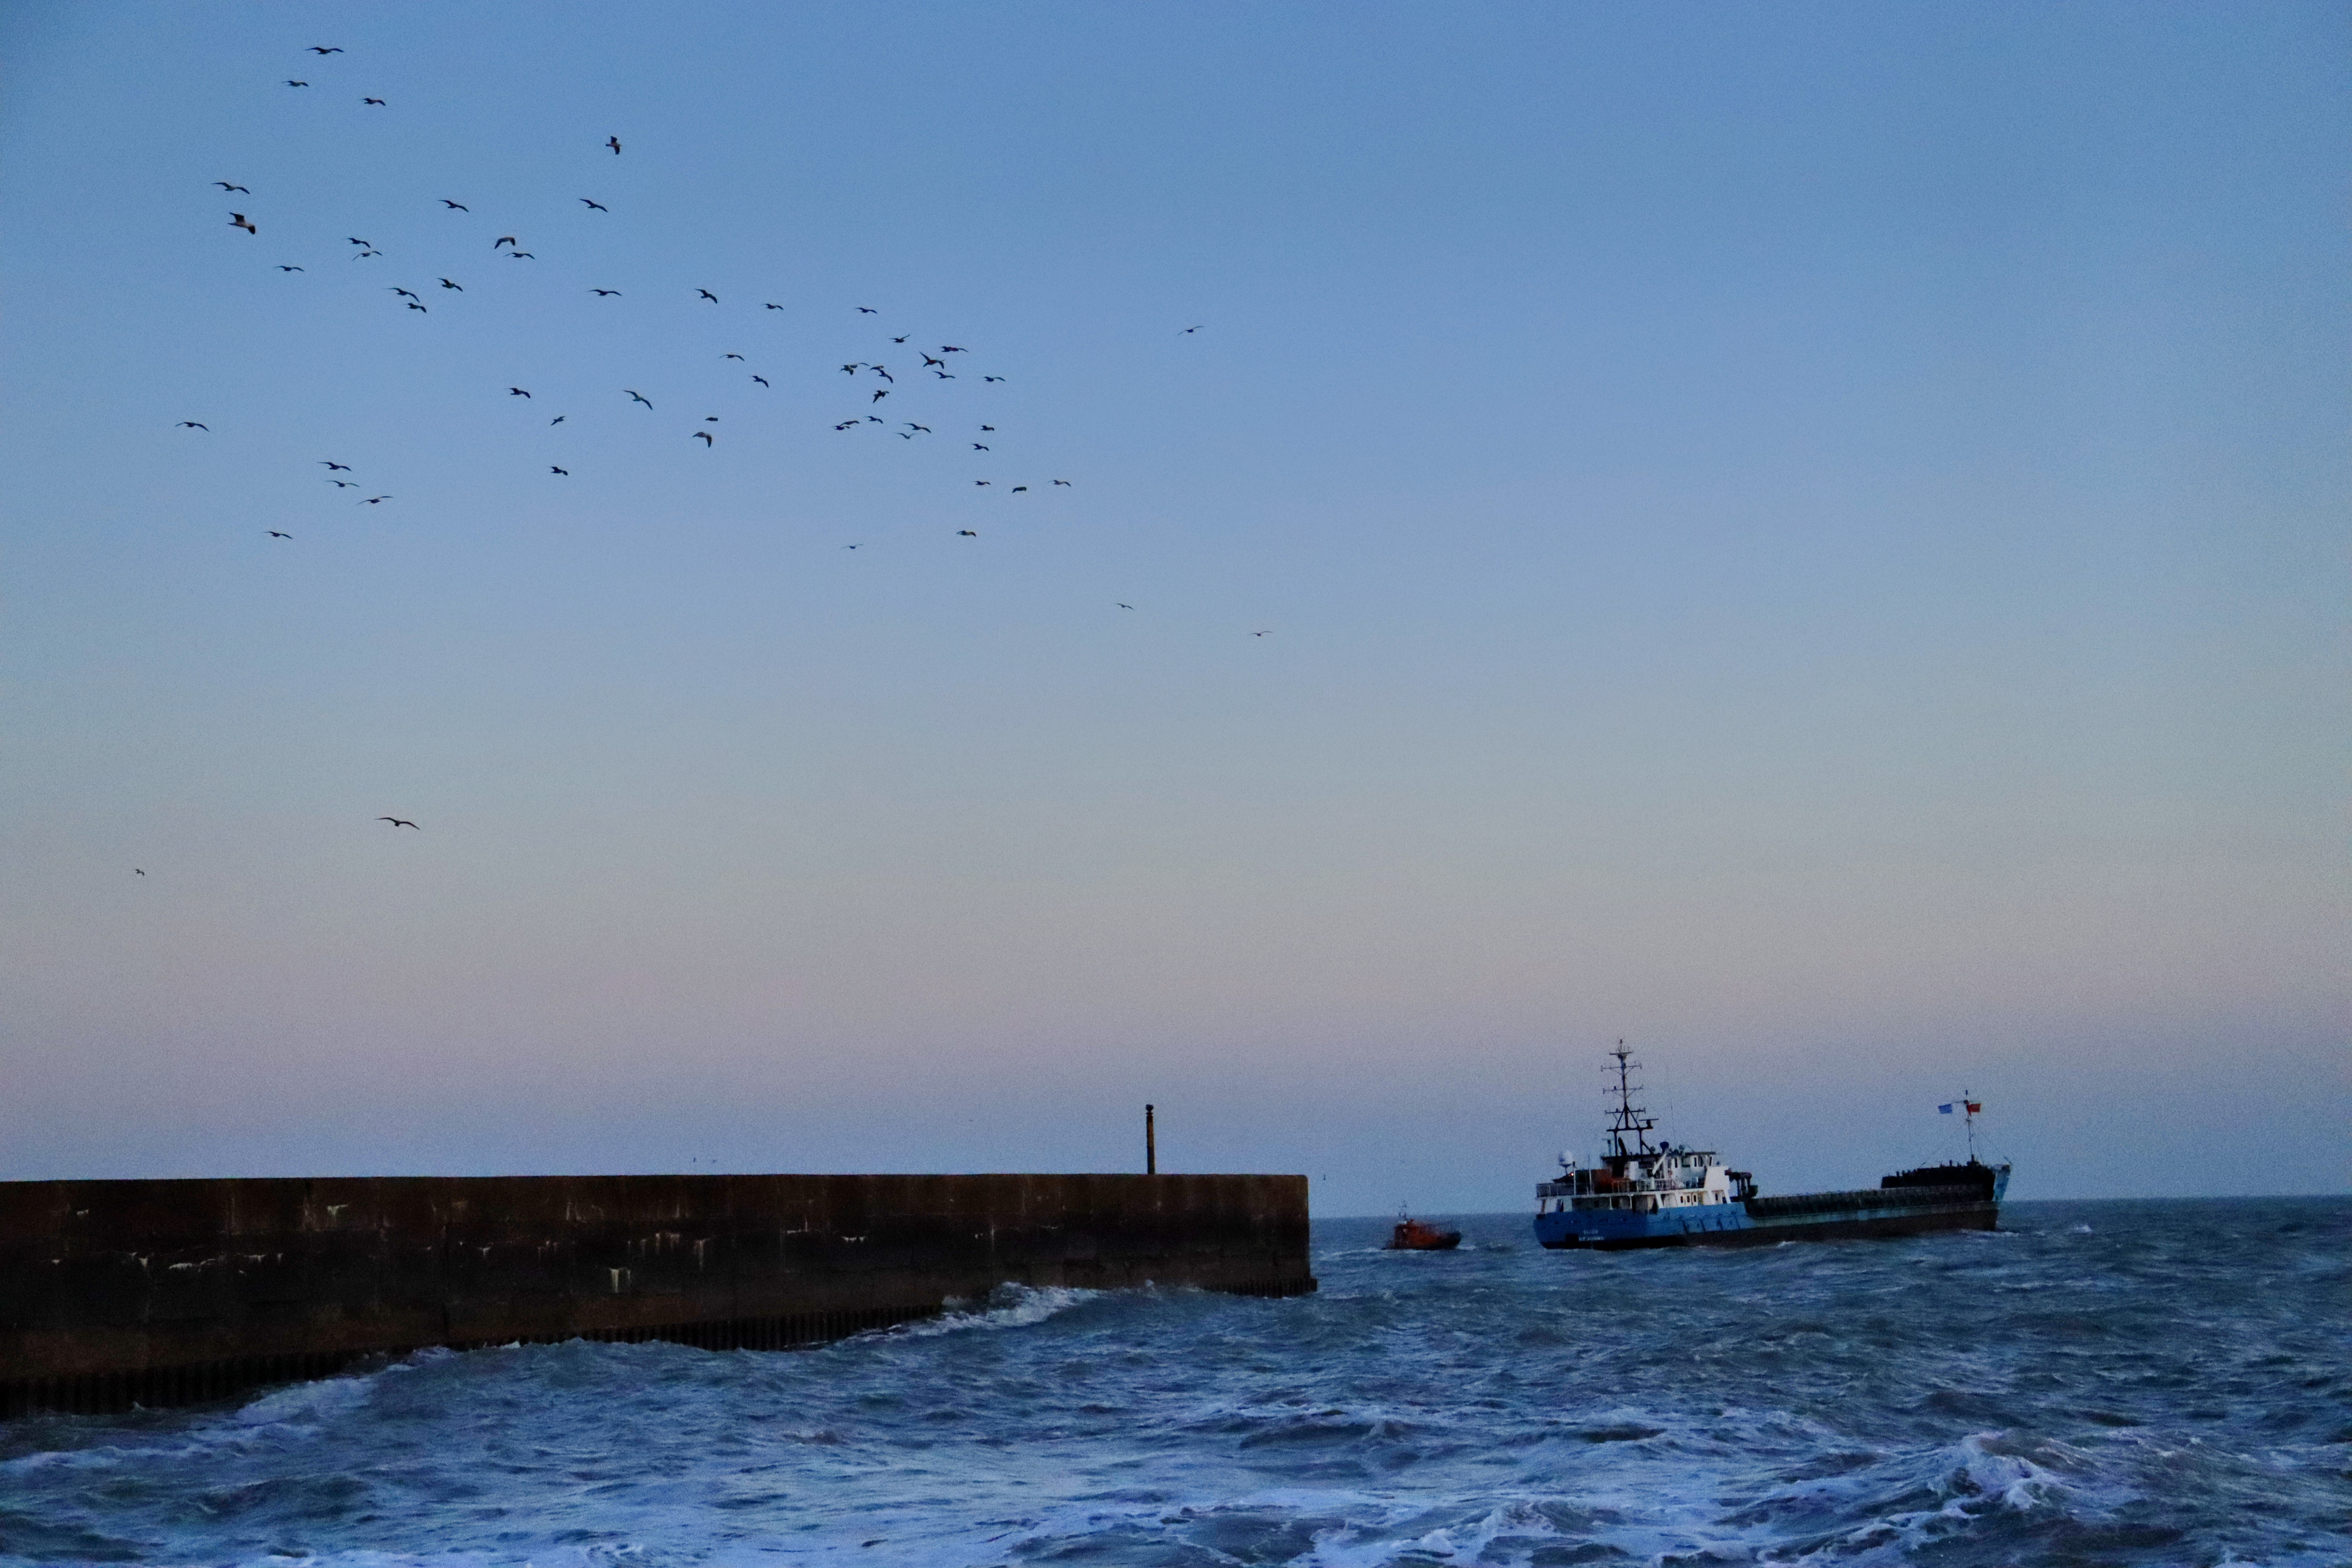 Cargo boat escorted out of a harbour by a smaller pilot boat. Seagulls circle above the harbour wall in the left of the photo.